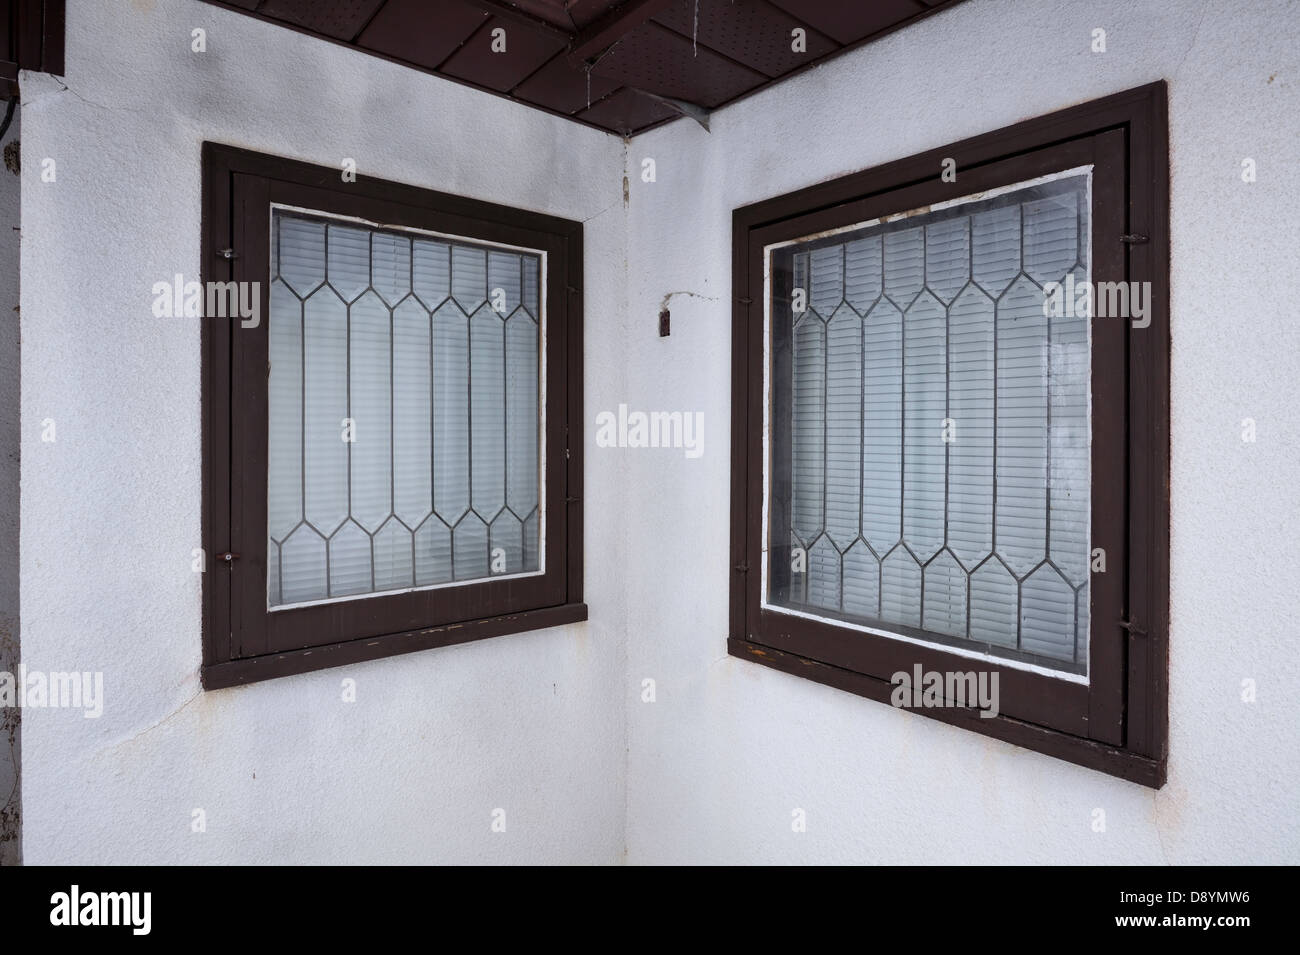 Lead glass windows in an old abandoned house. - Stock Image